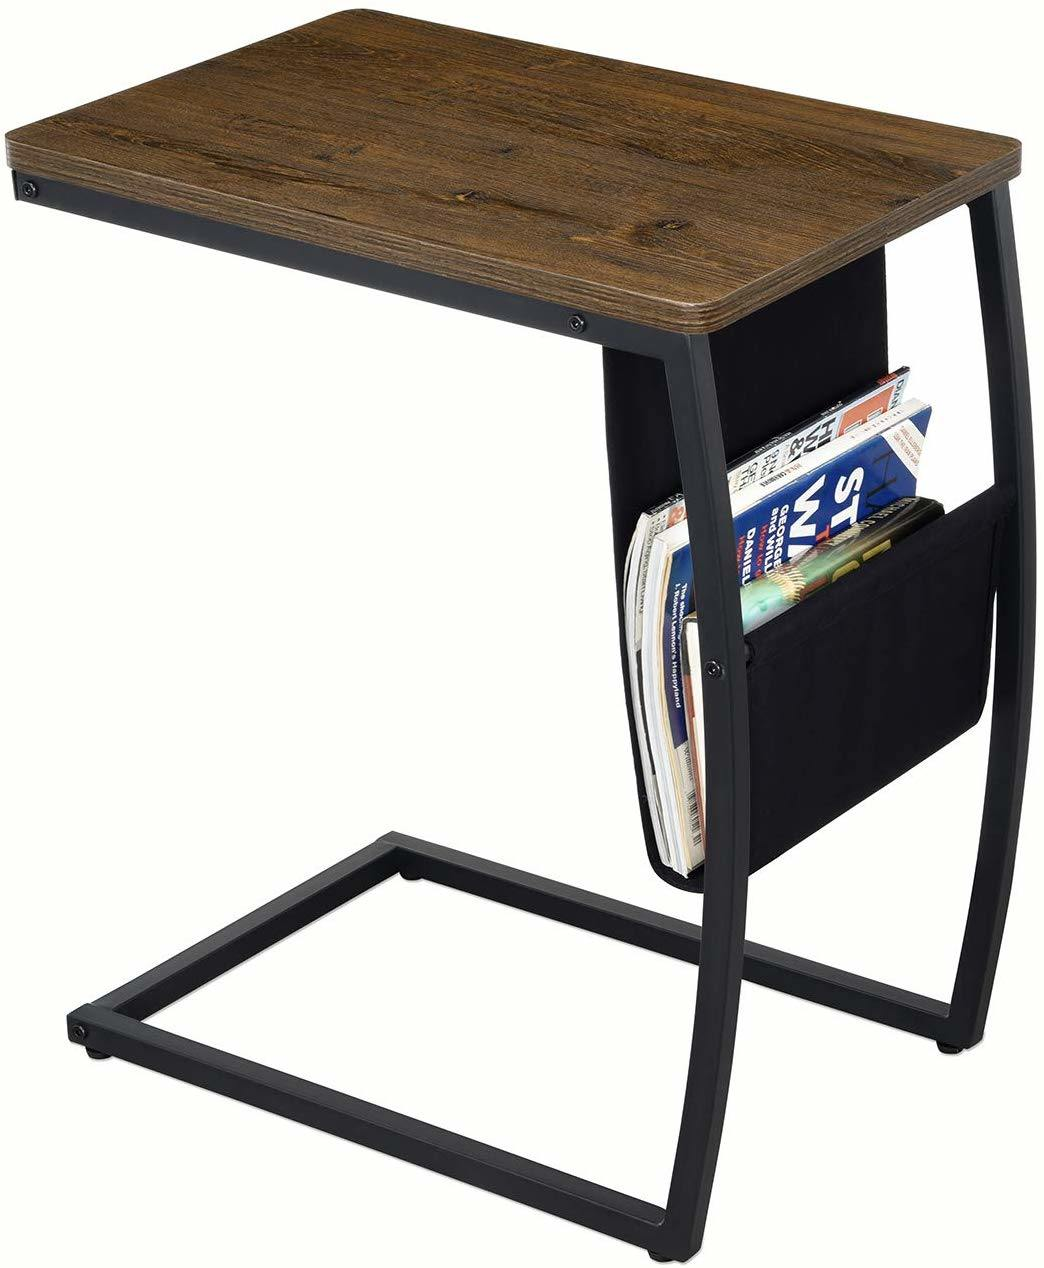 Accent Sofa C End Tables Living Room with Pocket